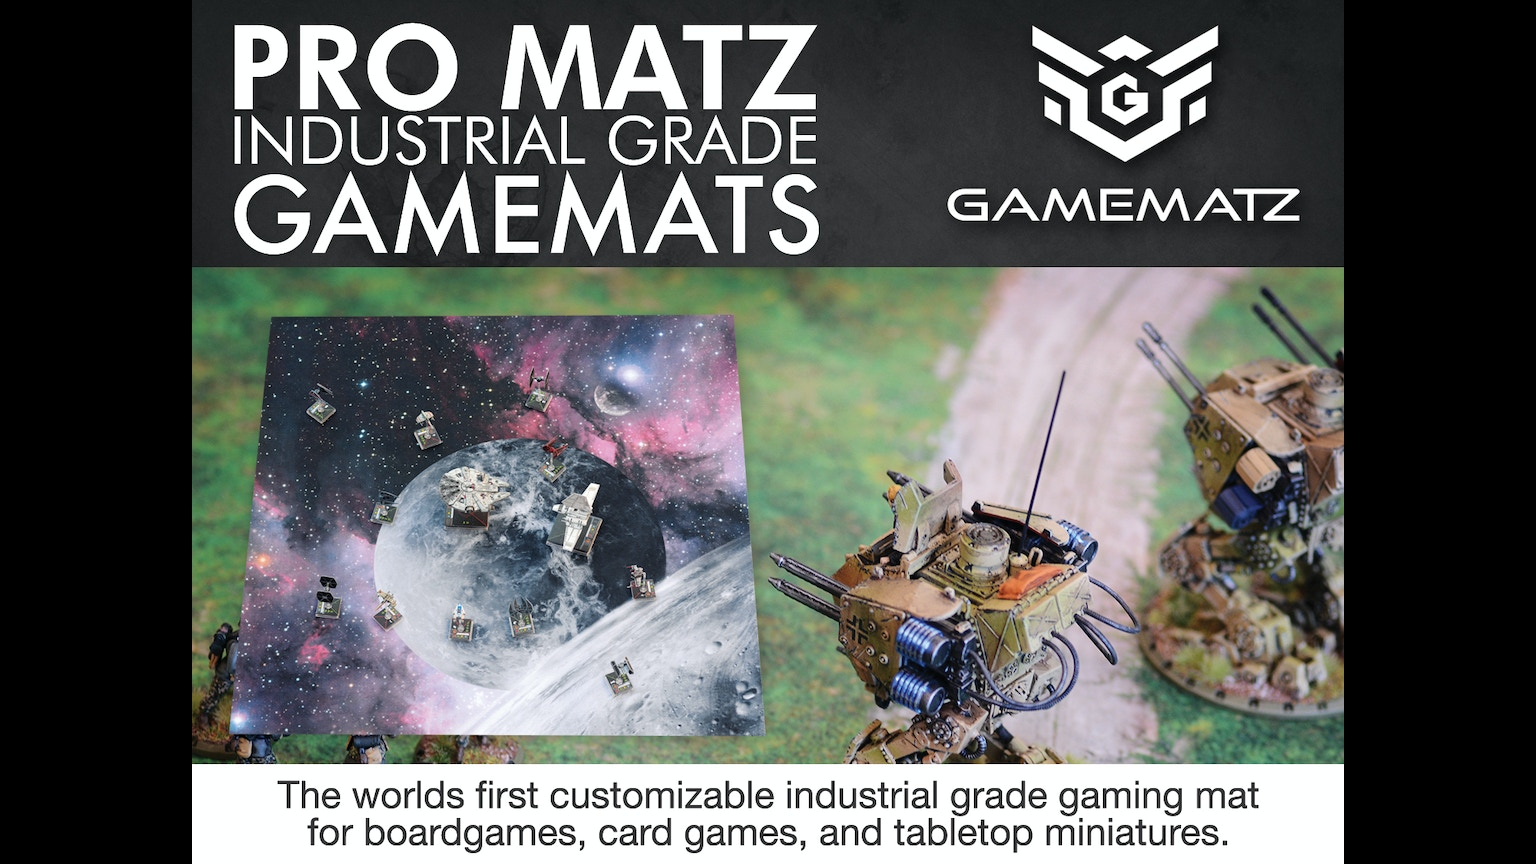 Promatz Industrial Grade Gaming Mats By Game Matz By